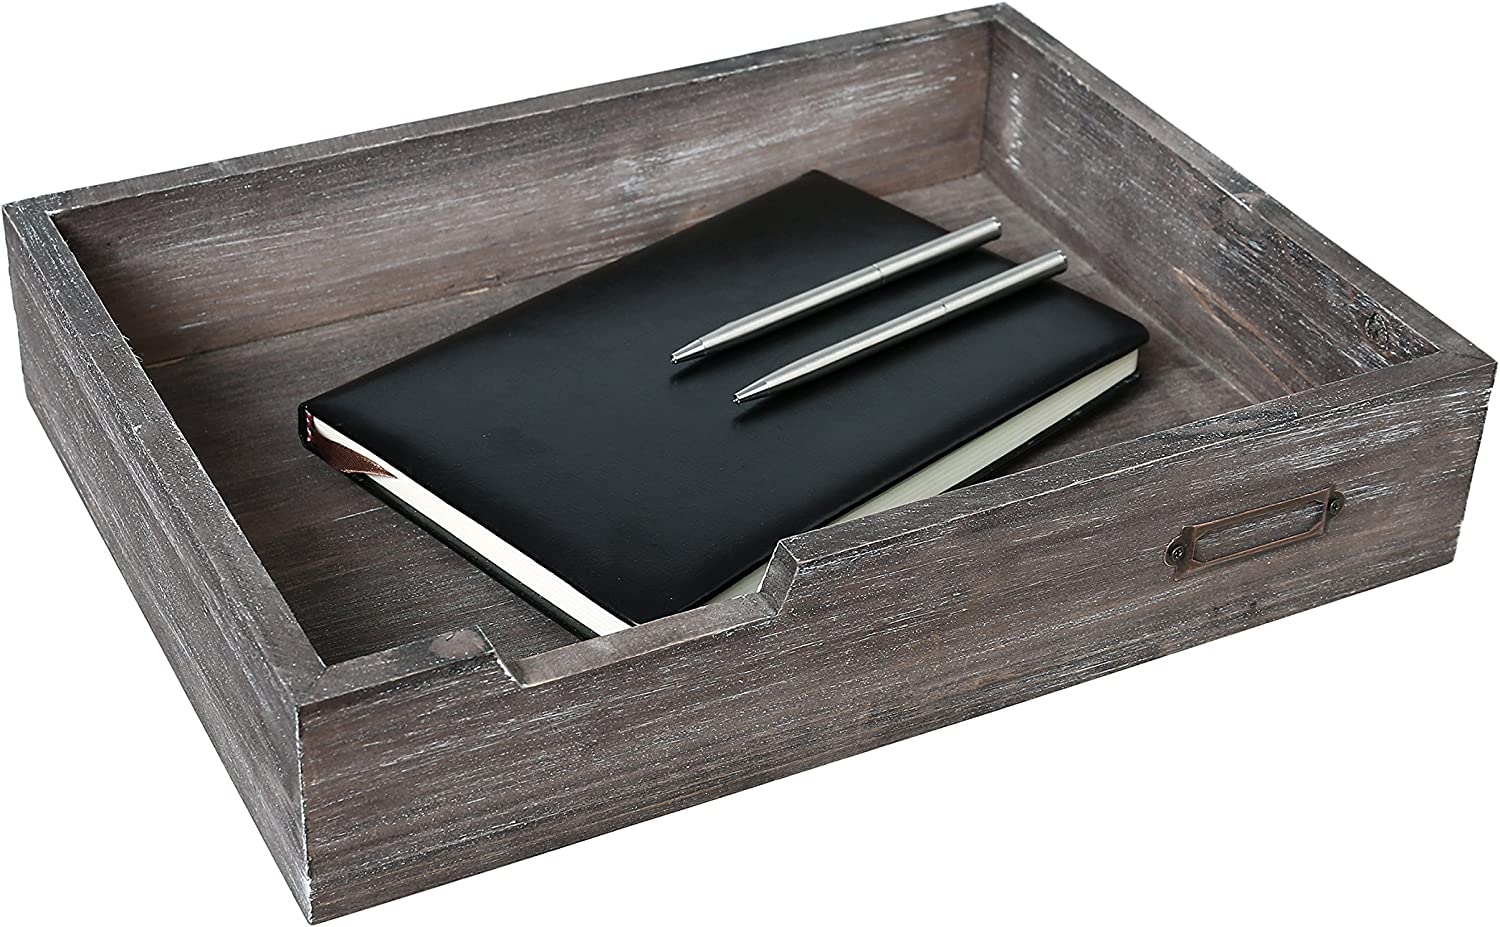 Rustic Brown Wood Stackable Office Document Tray, Desktop File & Paper Bin w/Metal Label Holder